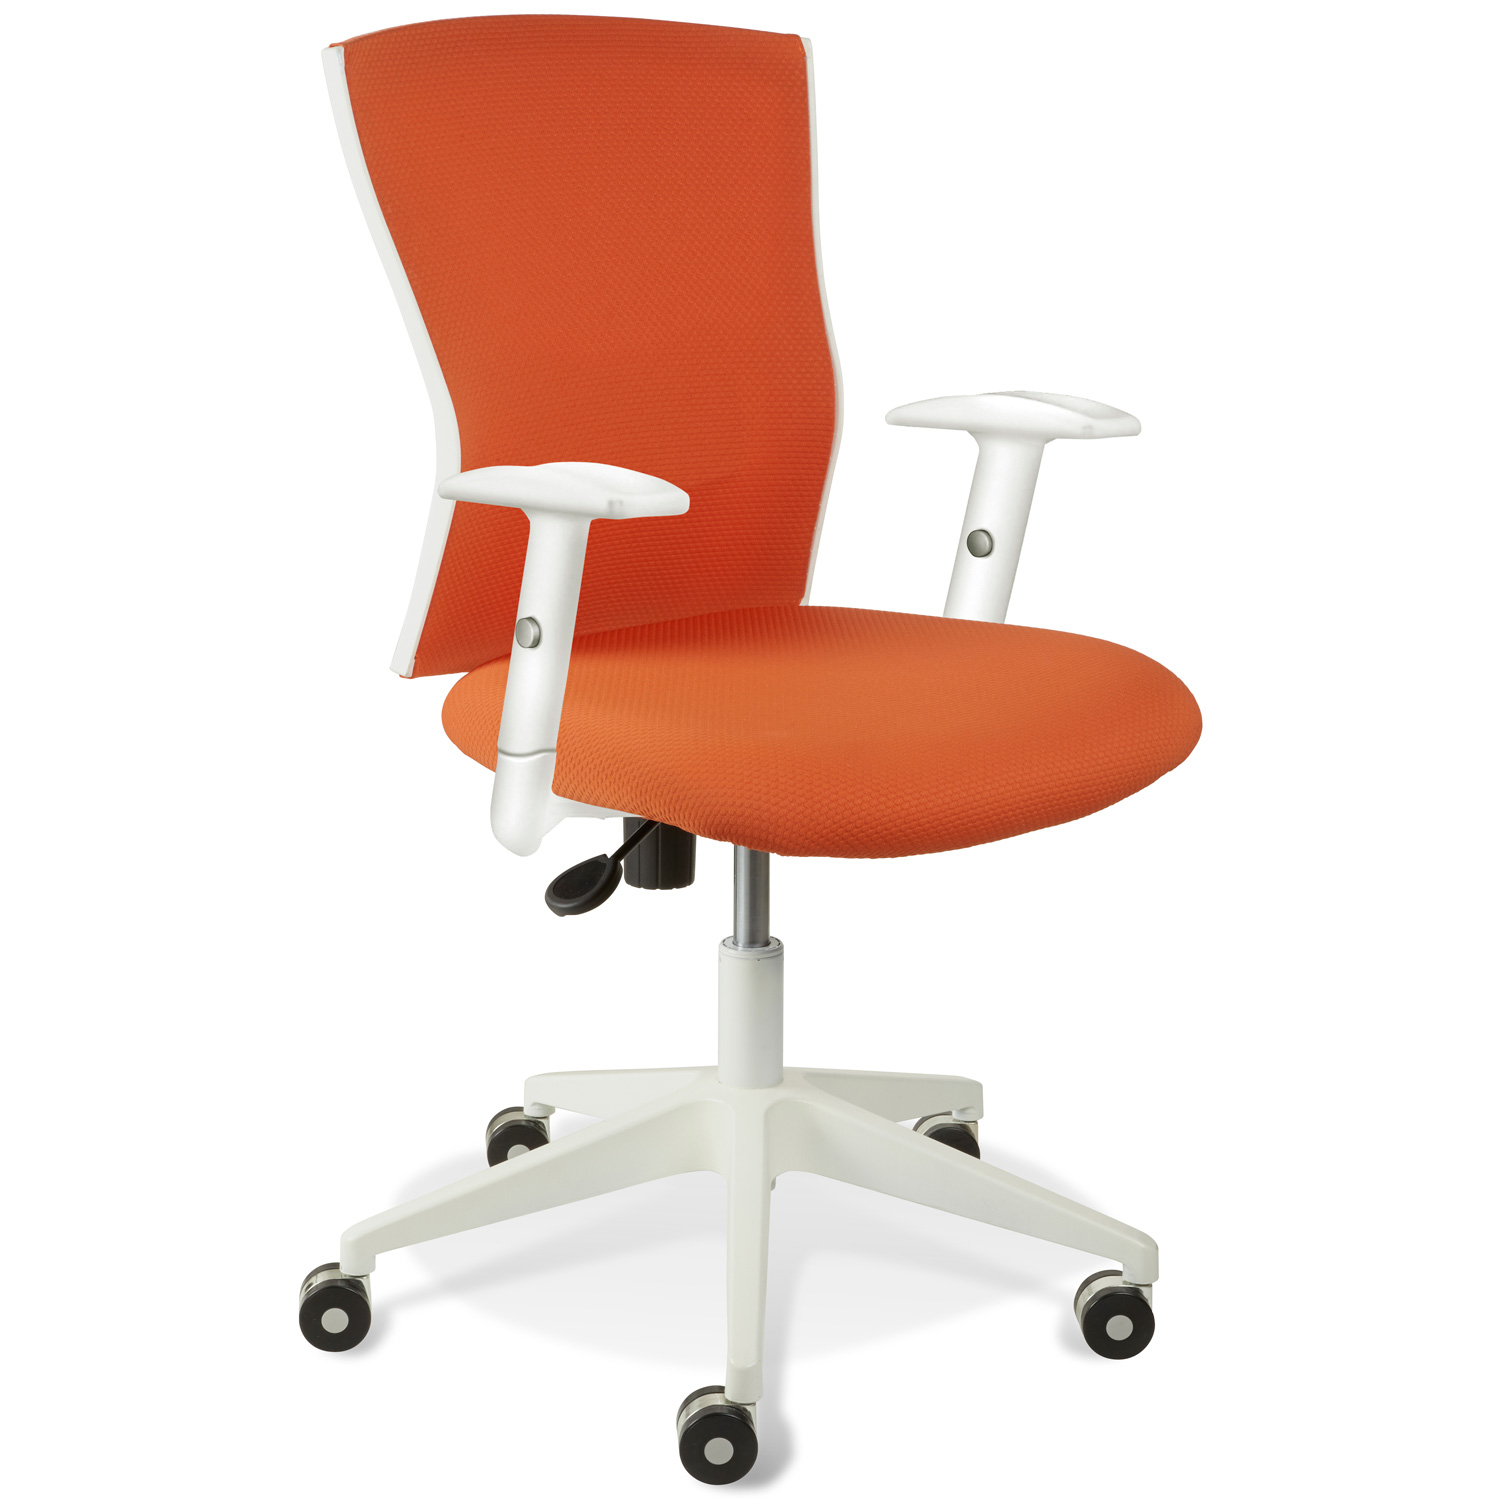 Sanne Office Chair - Tilt, Adjustable Arms, White & Orange